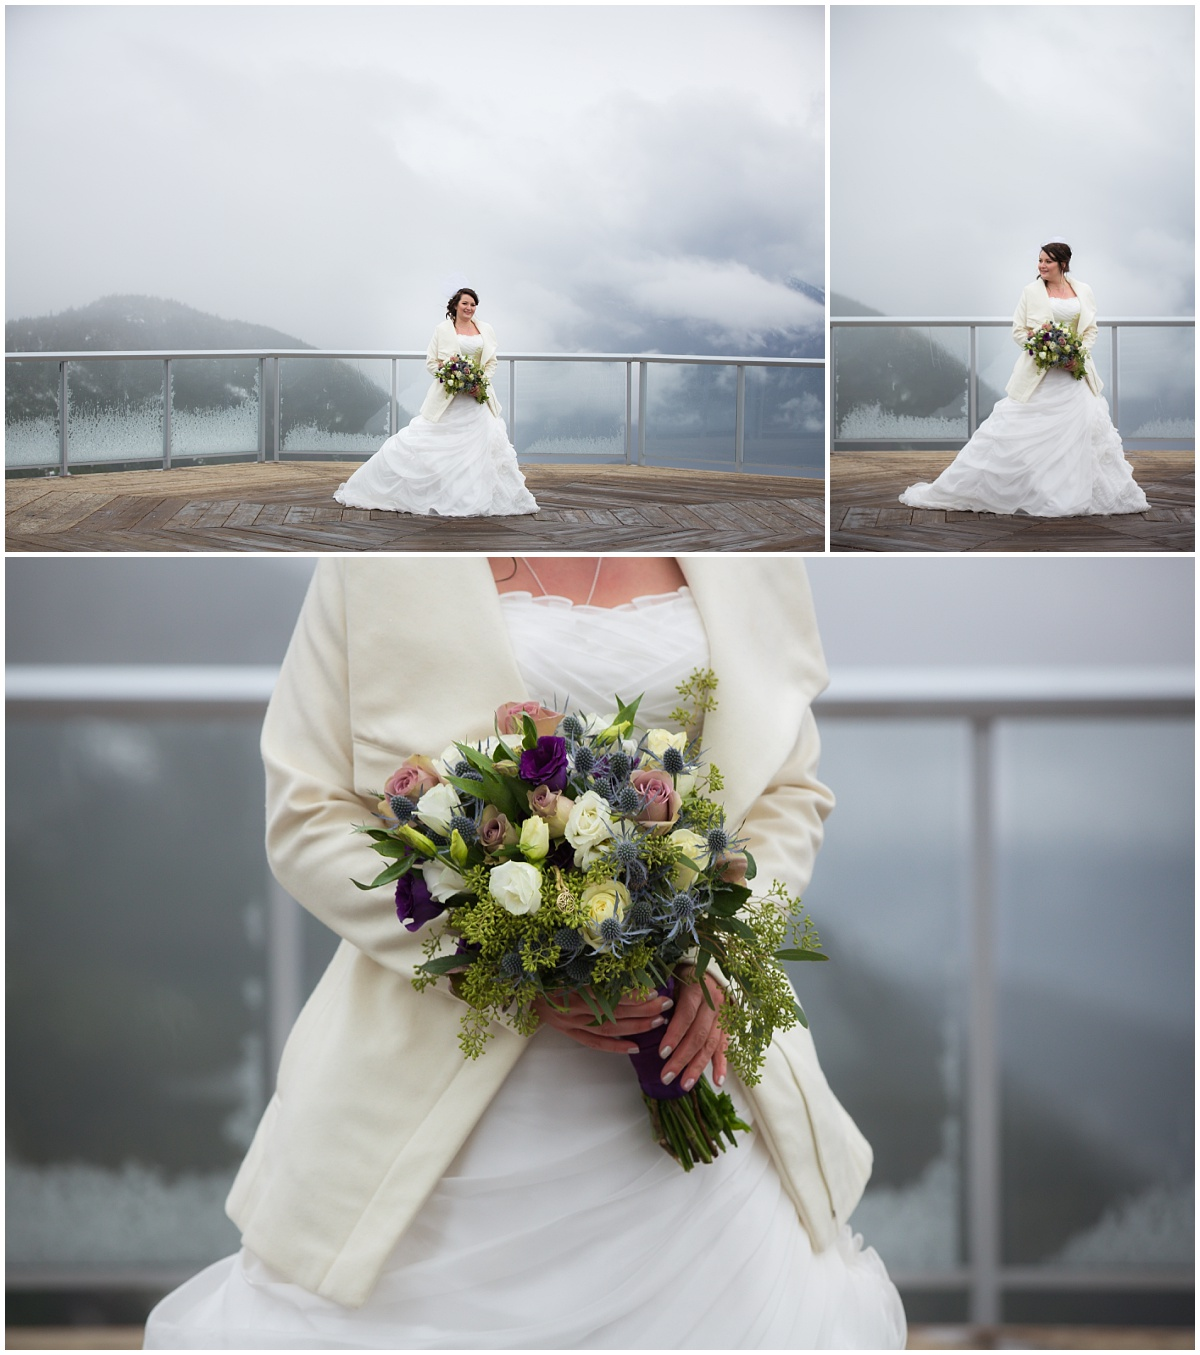 Amazing Day Photography - Squamish Wedding - Howe Sound Inn Wedding - Sea to Sky Gondola Wedding - Squamish Wedding Photographer - Winter Wedding - Snowy Wedding (19).jpg